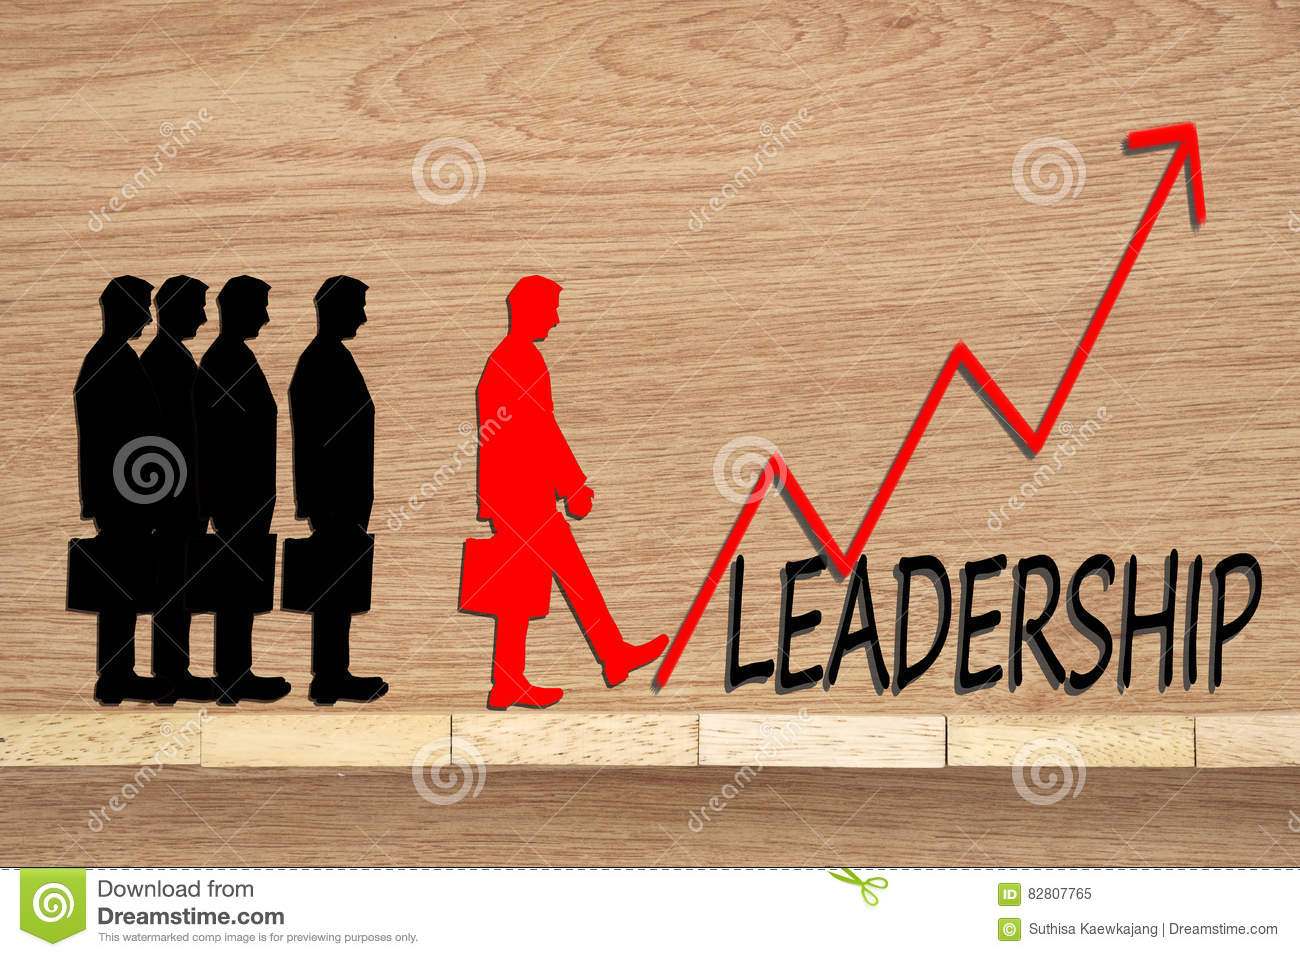 Leadership and team abstract business concept Wooden blocks and